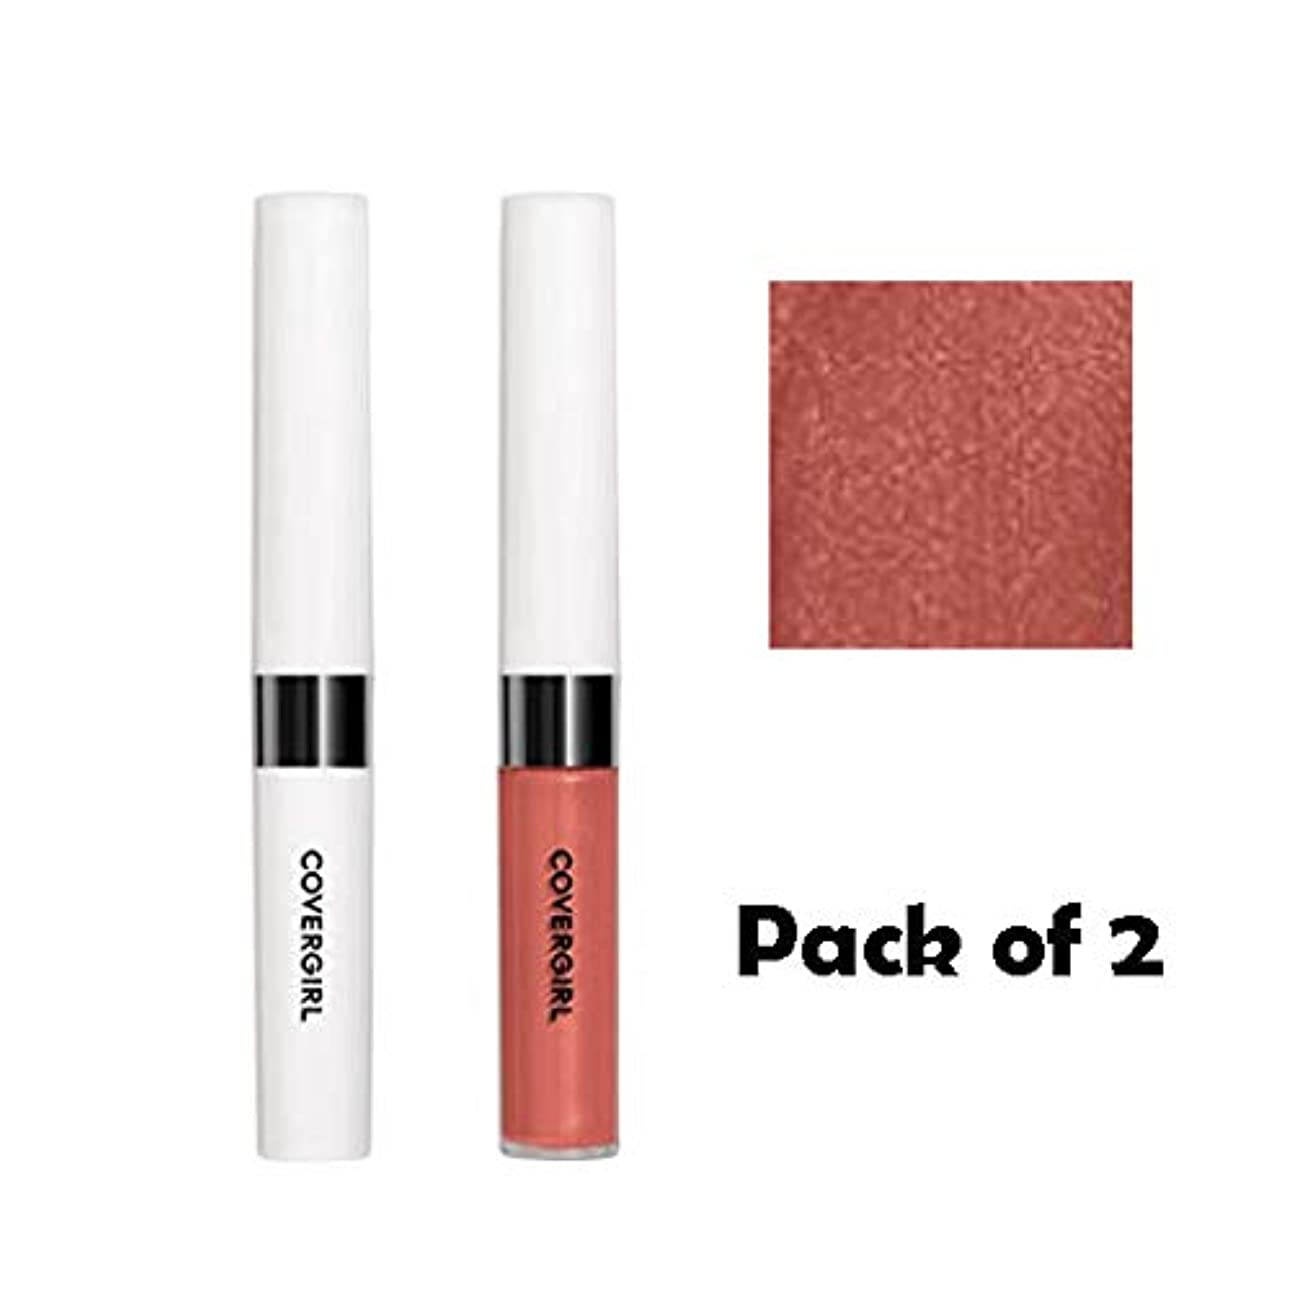 爆発物ミント持つCOVERGIRL Outlast All-Day Moisturizing Lip Color - Canyon 626 (2 Packs) [海外直送品] [並行輸入品]